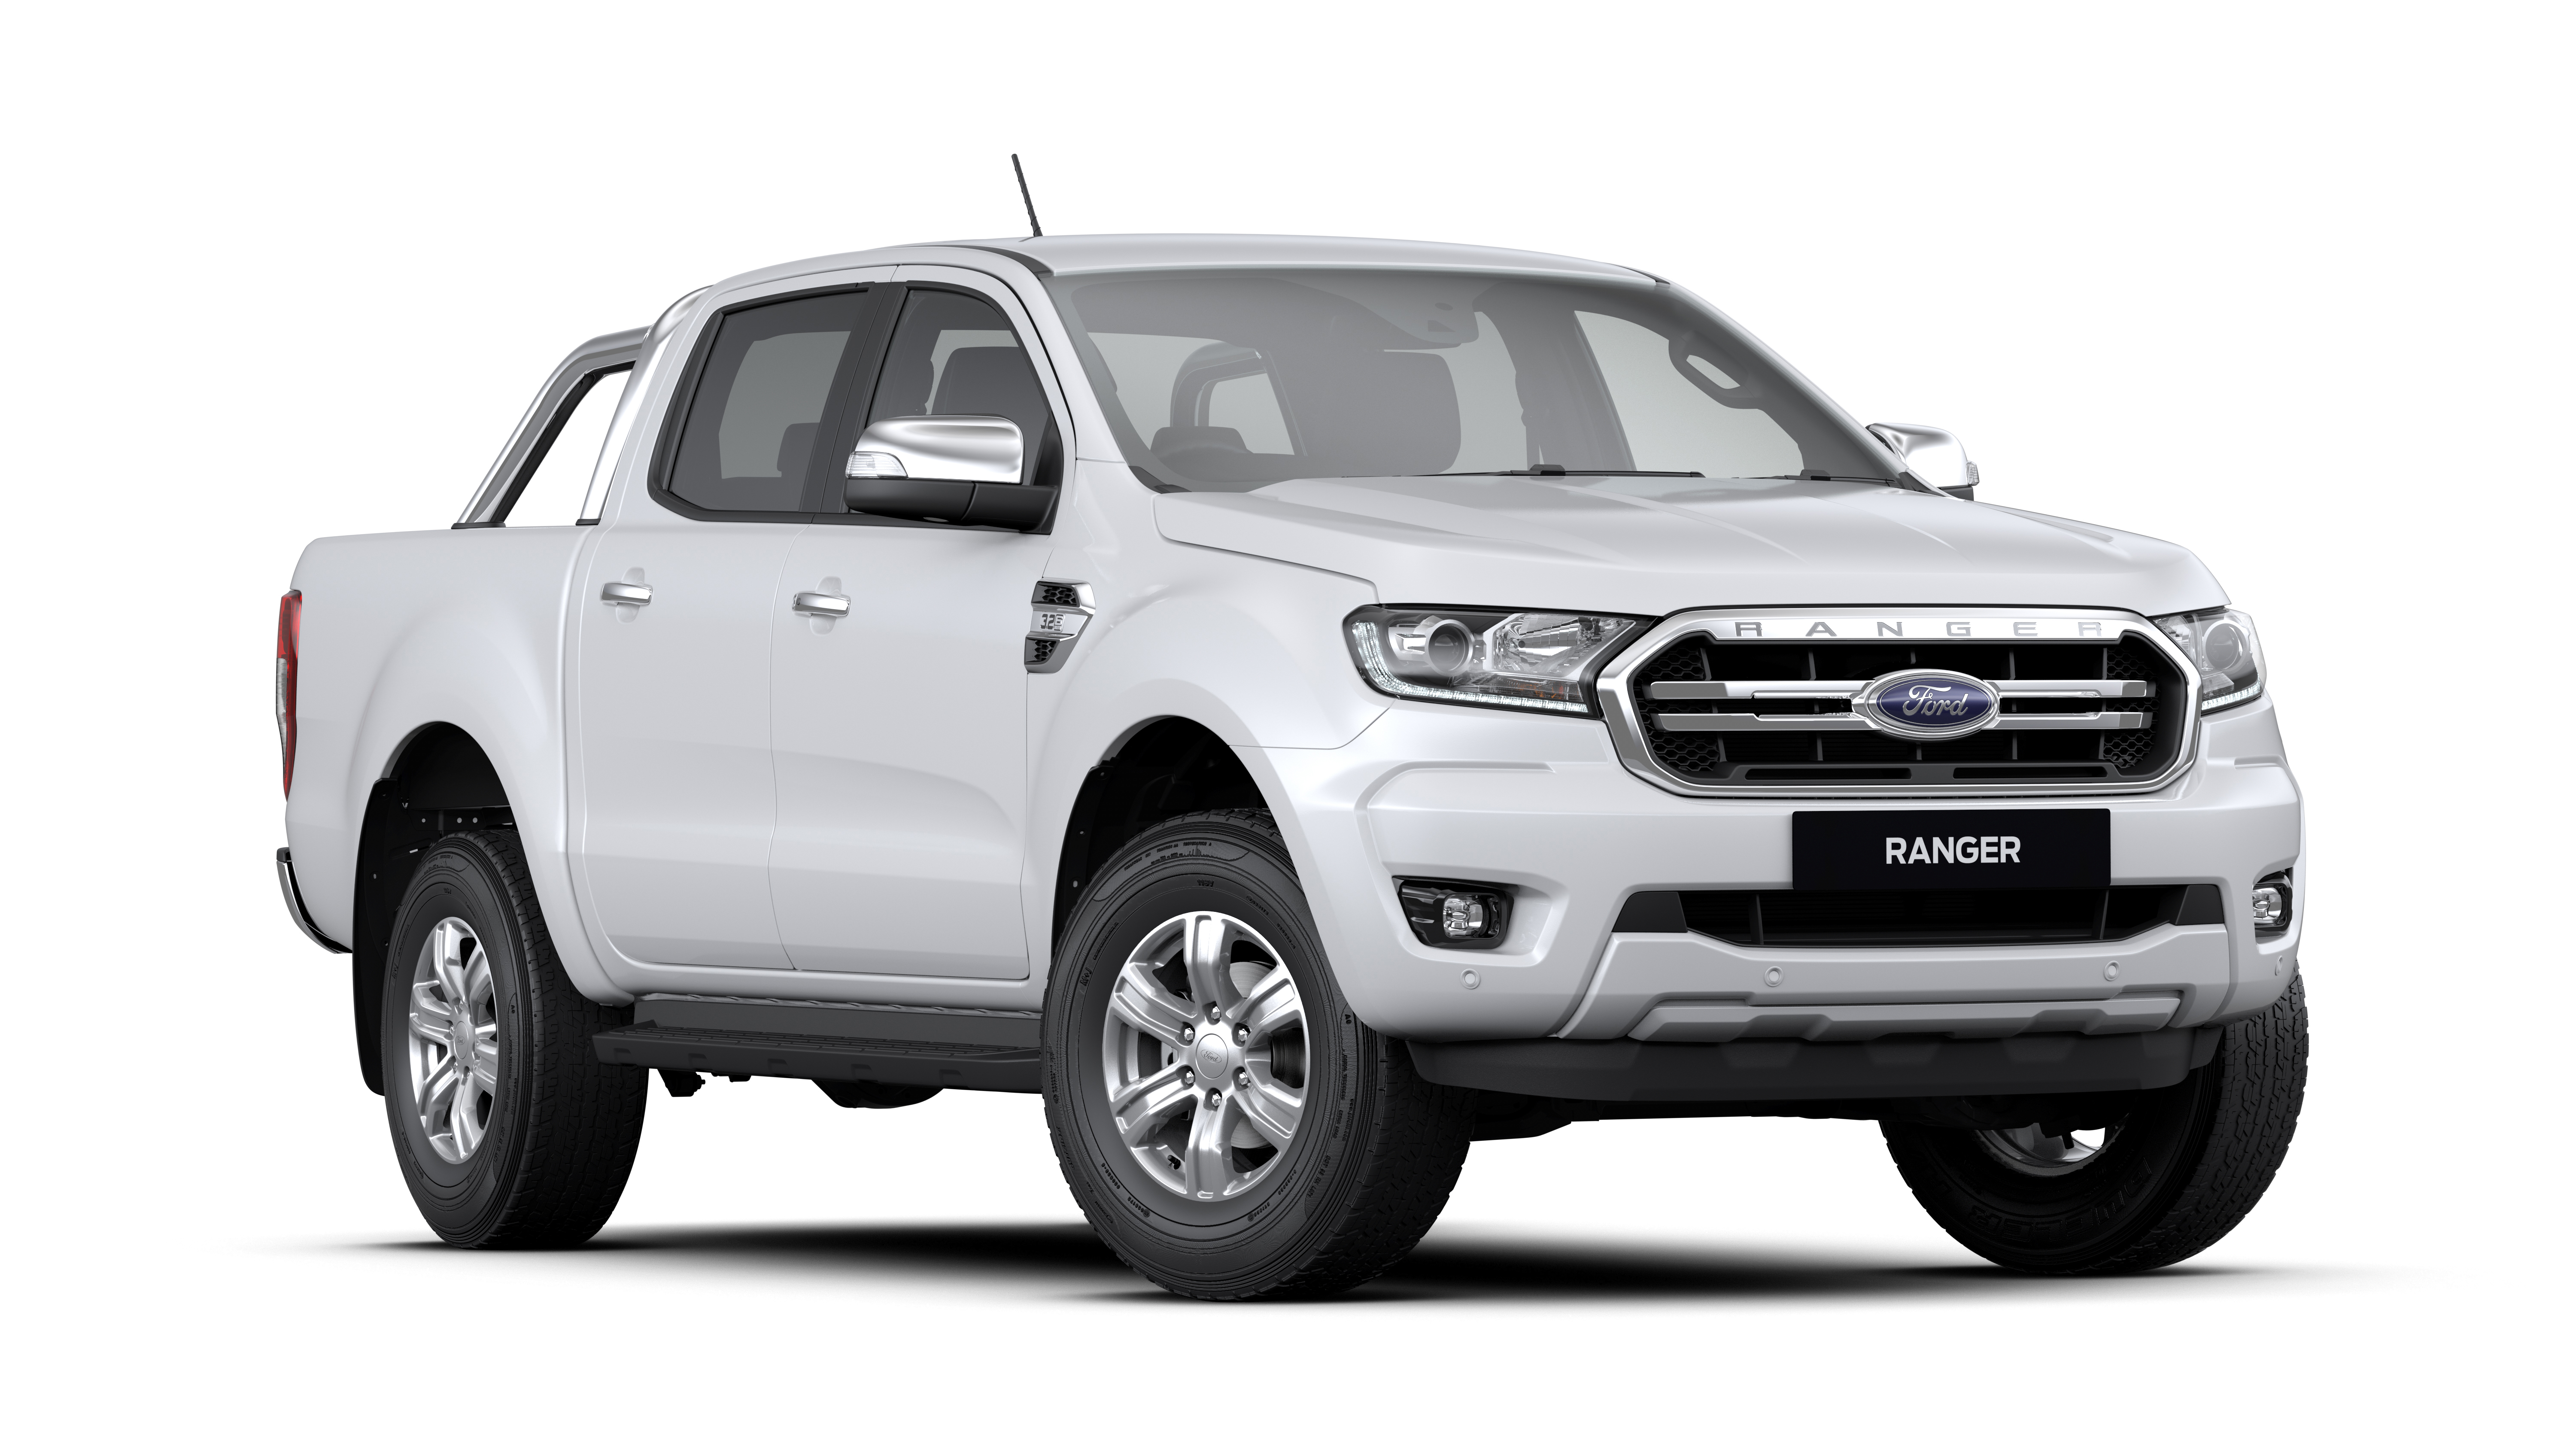 MY2019.75 Ford Ranger XLT 3.2 4x4 Auto Dual cab from only $49990